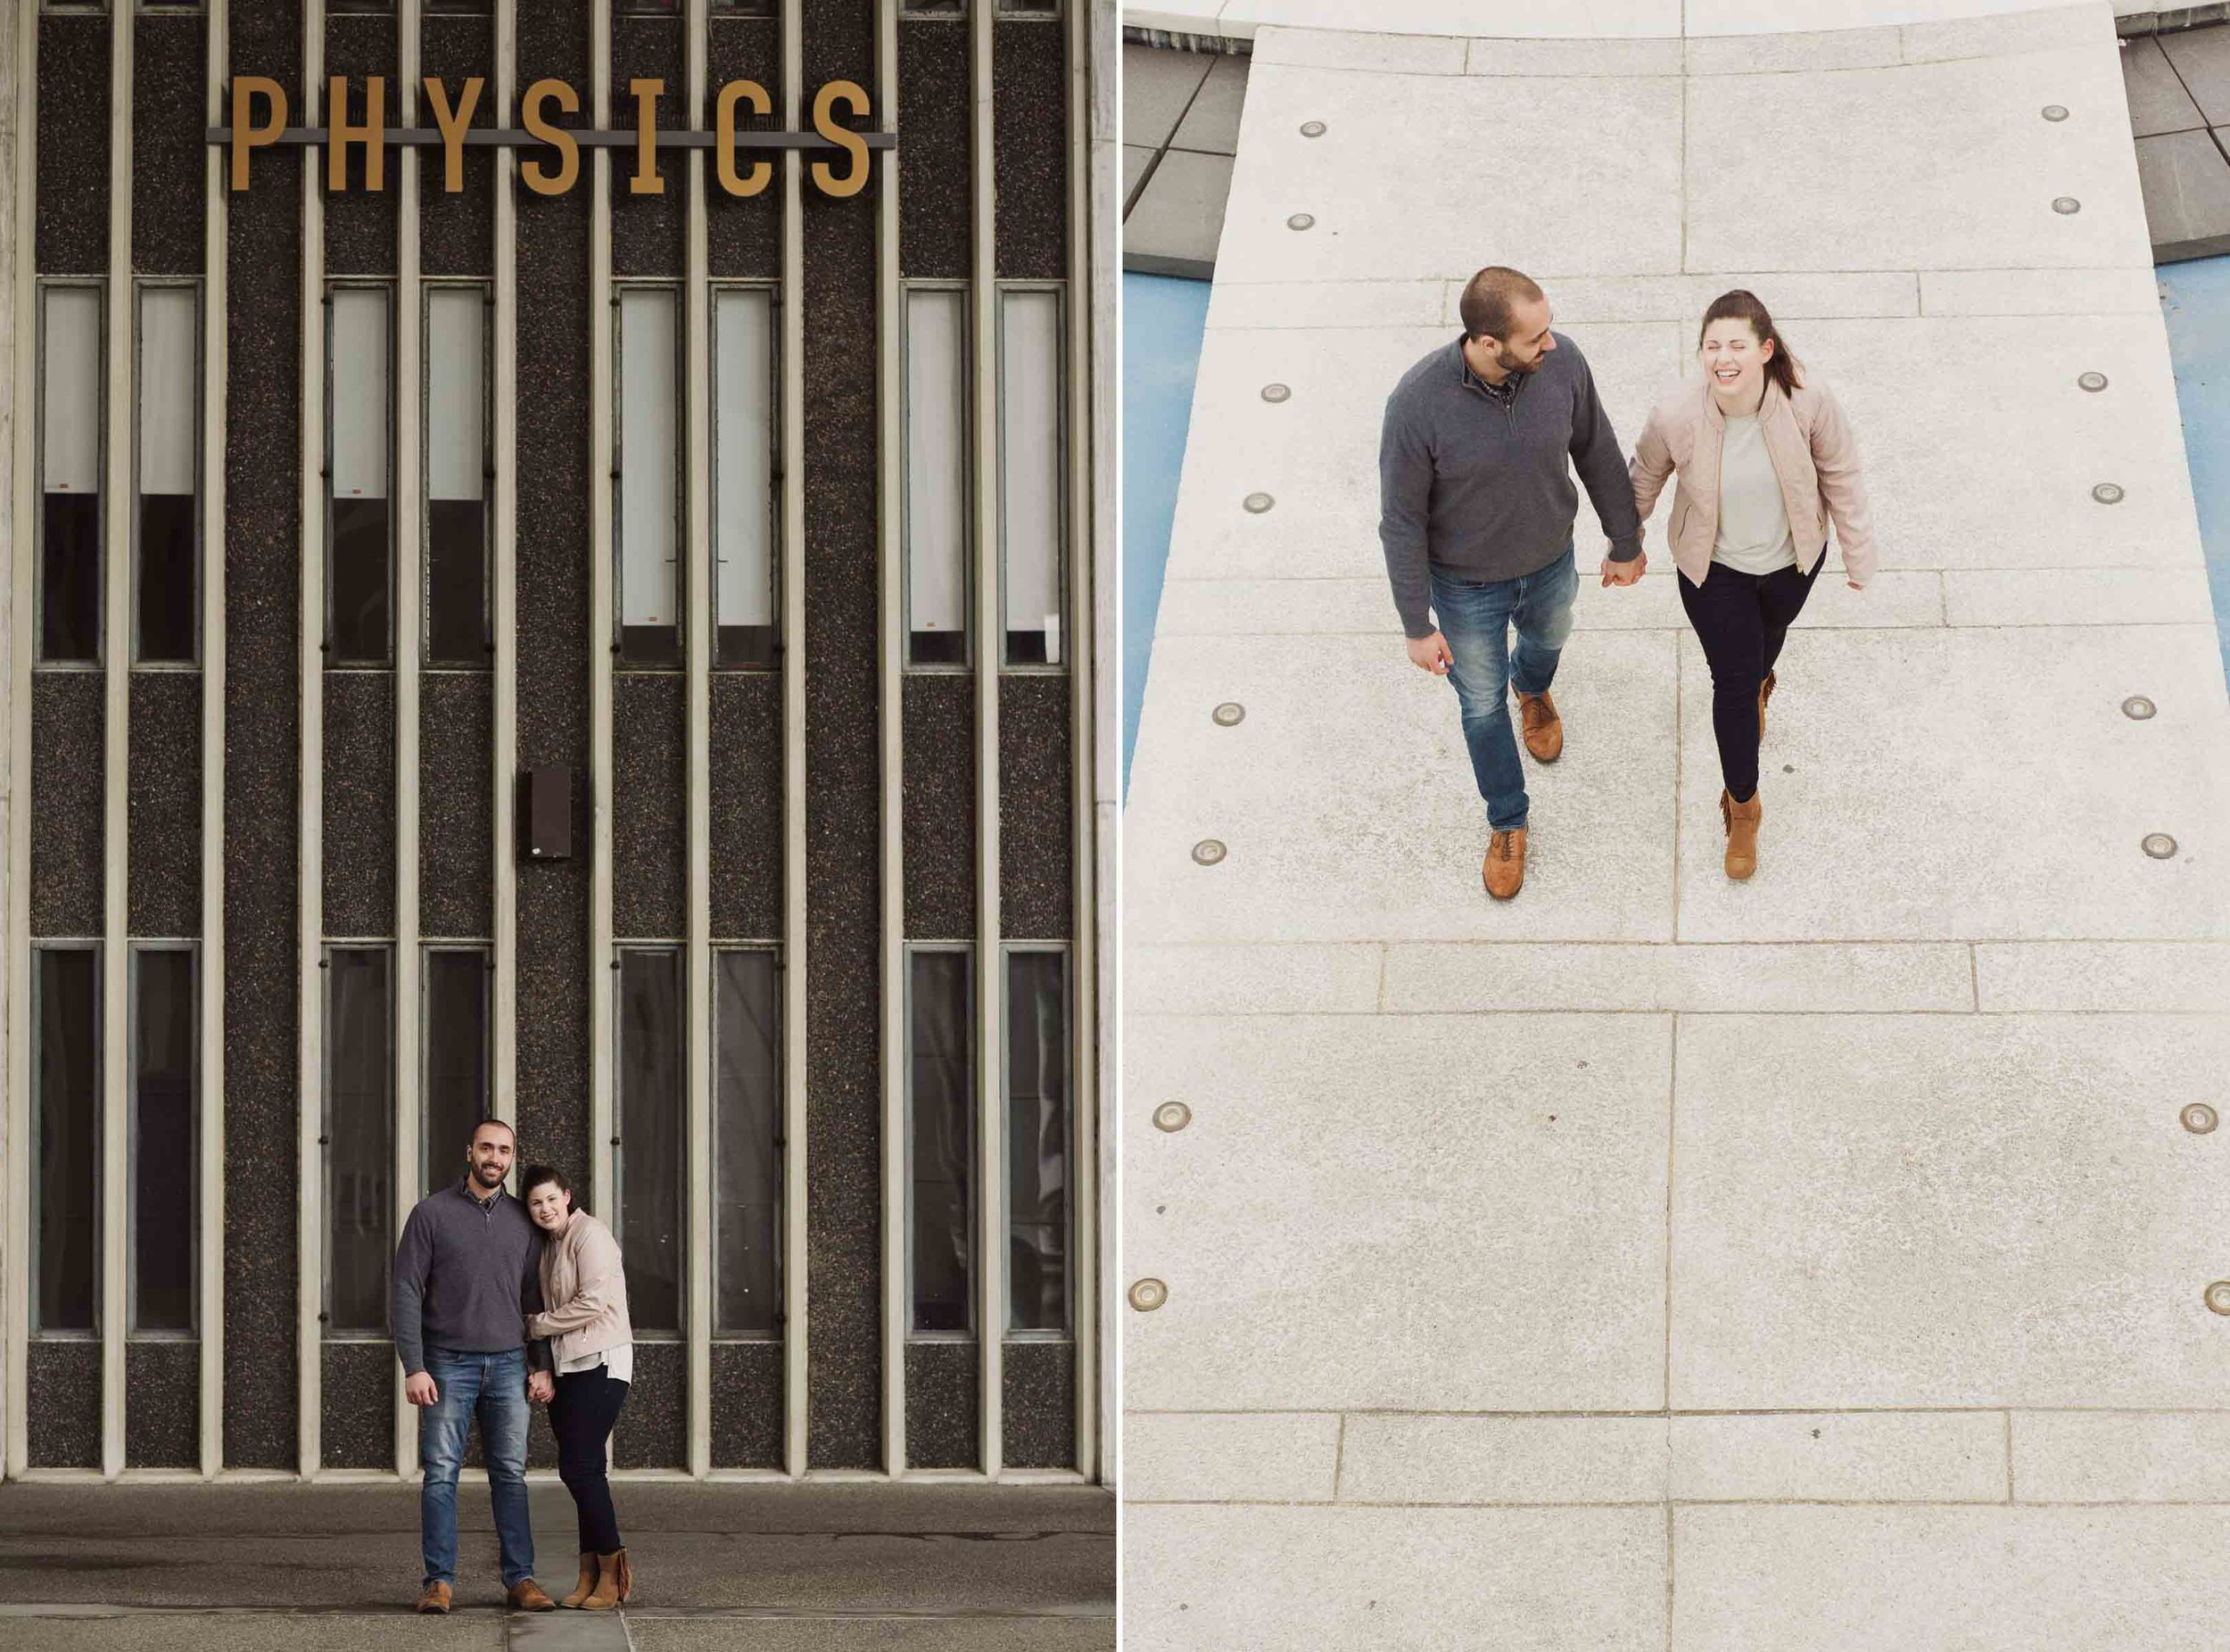 A young caucasian man and woman pose for a photo in front of the Physics building at the University of Albany campus.